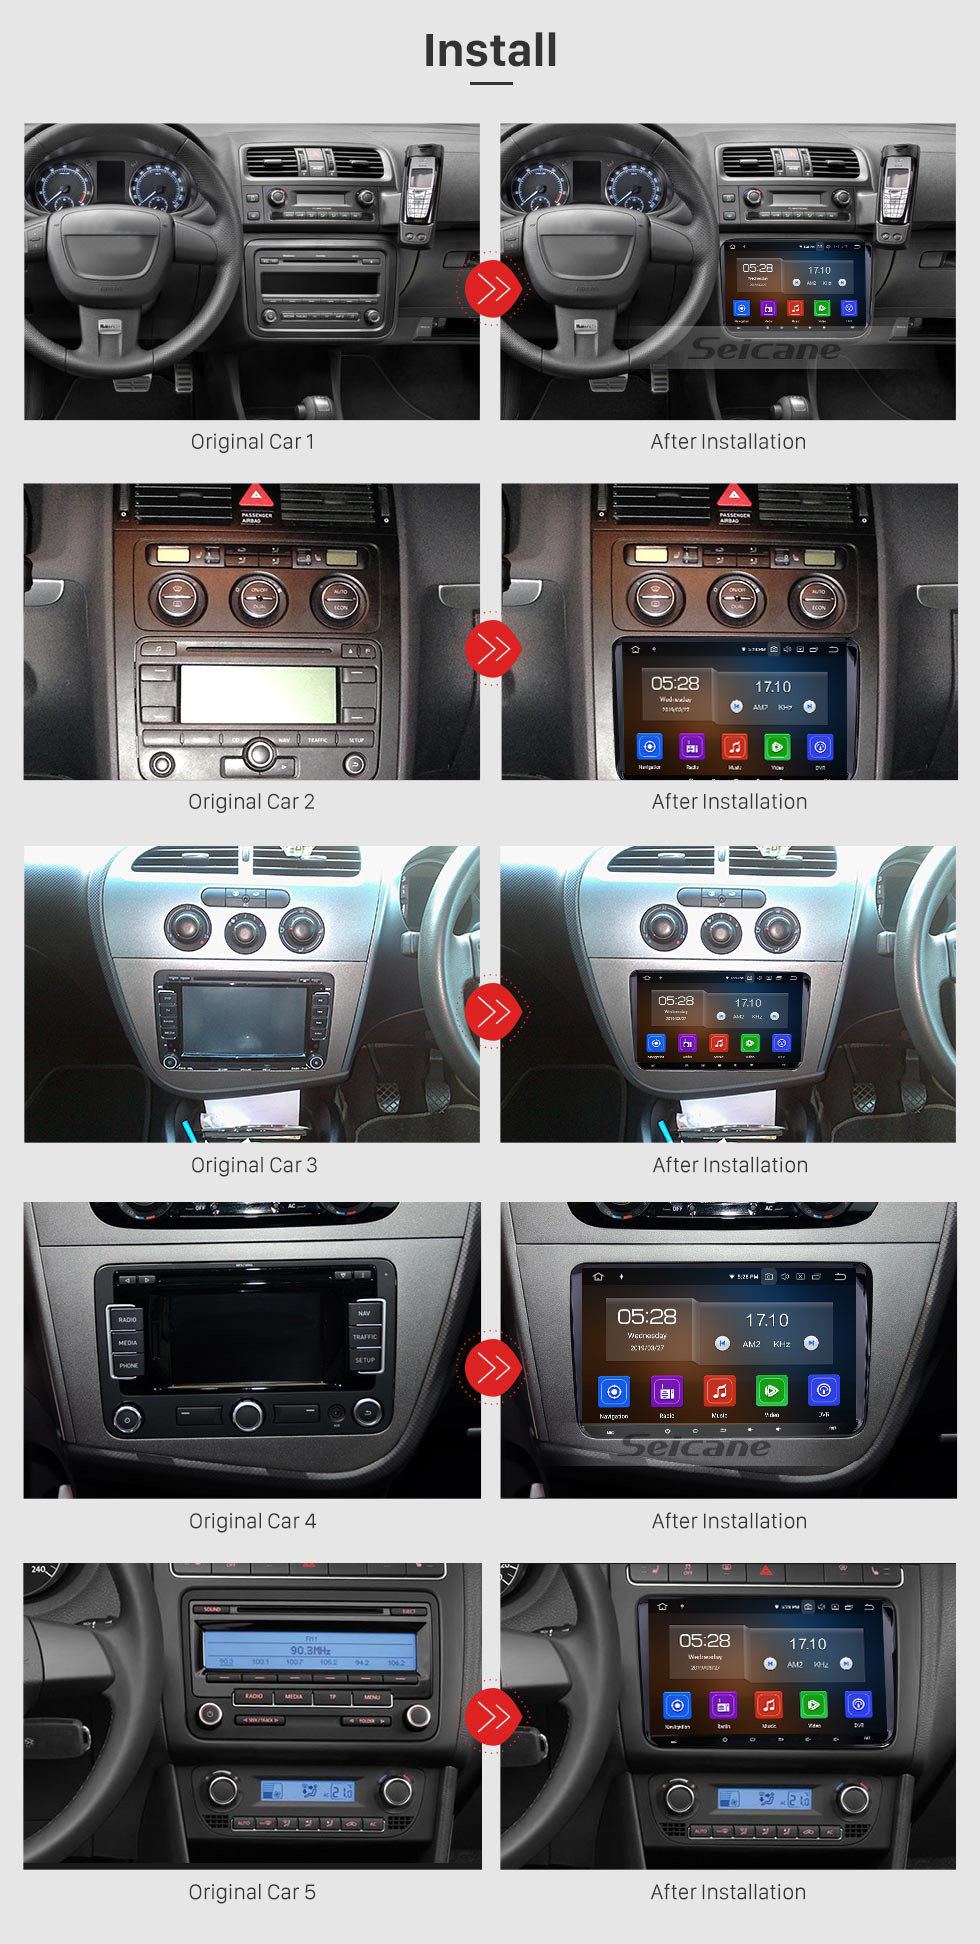 Seicane 9 inch Android 9.0 Aftermarket OEM Autoradio GPS Navigation Stereo for 2003-2011 VW Volkswagen Scirocco Golf Polo Passat Jetta Tiguan Touran Sharan Sagita Caddy Cupra Seat Toledo Leon Alhambra with HD 1024*600 Touch Screen OBD2 Mirror Radio DVD Player